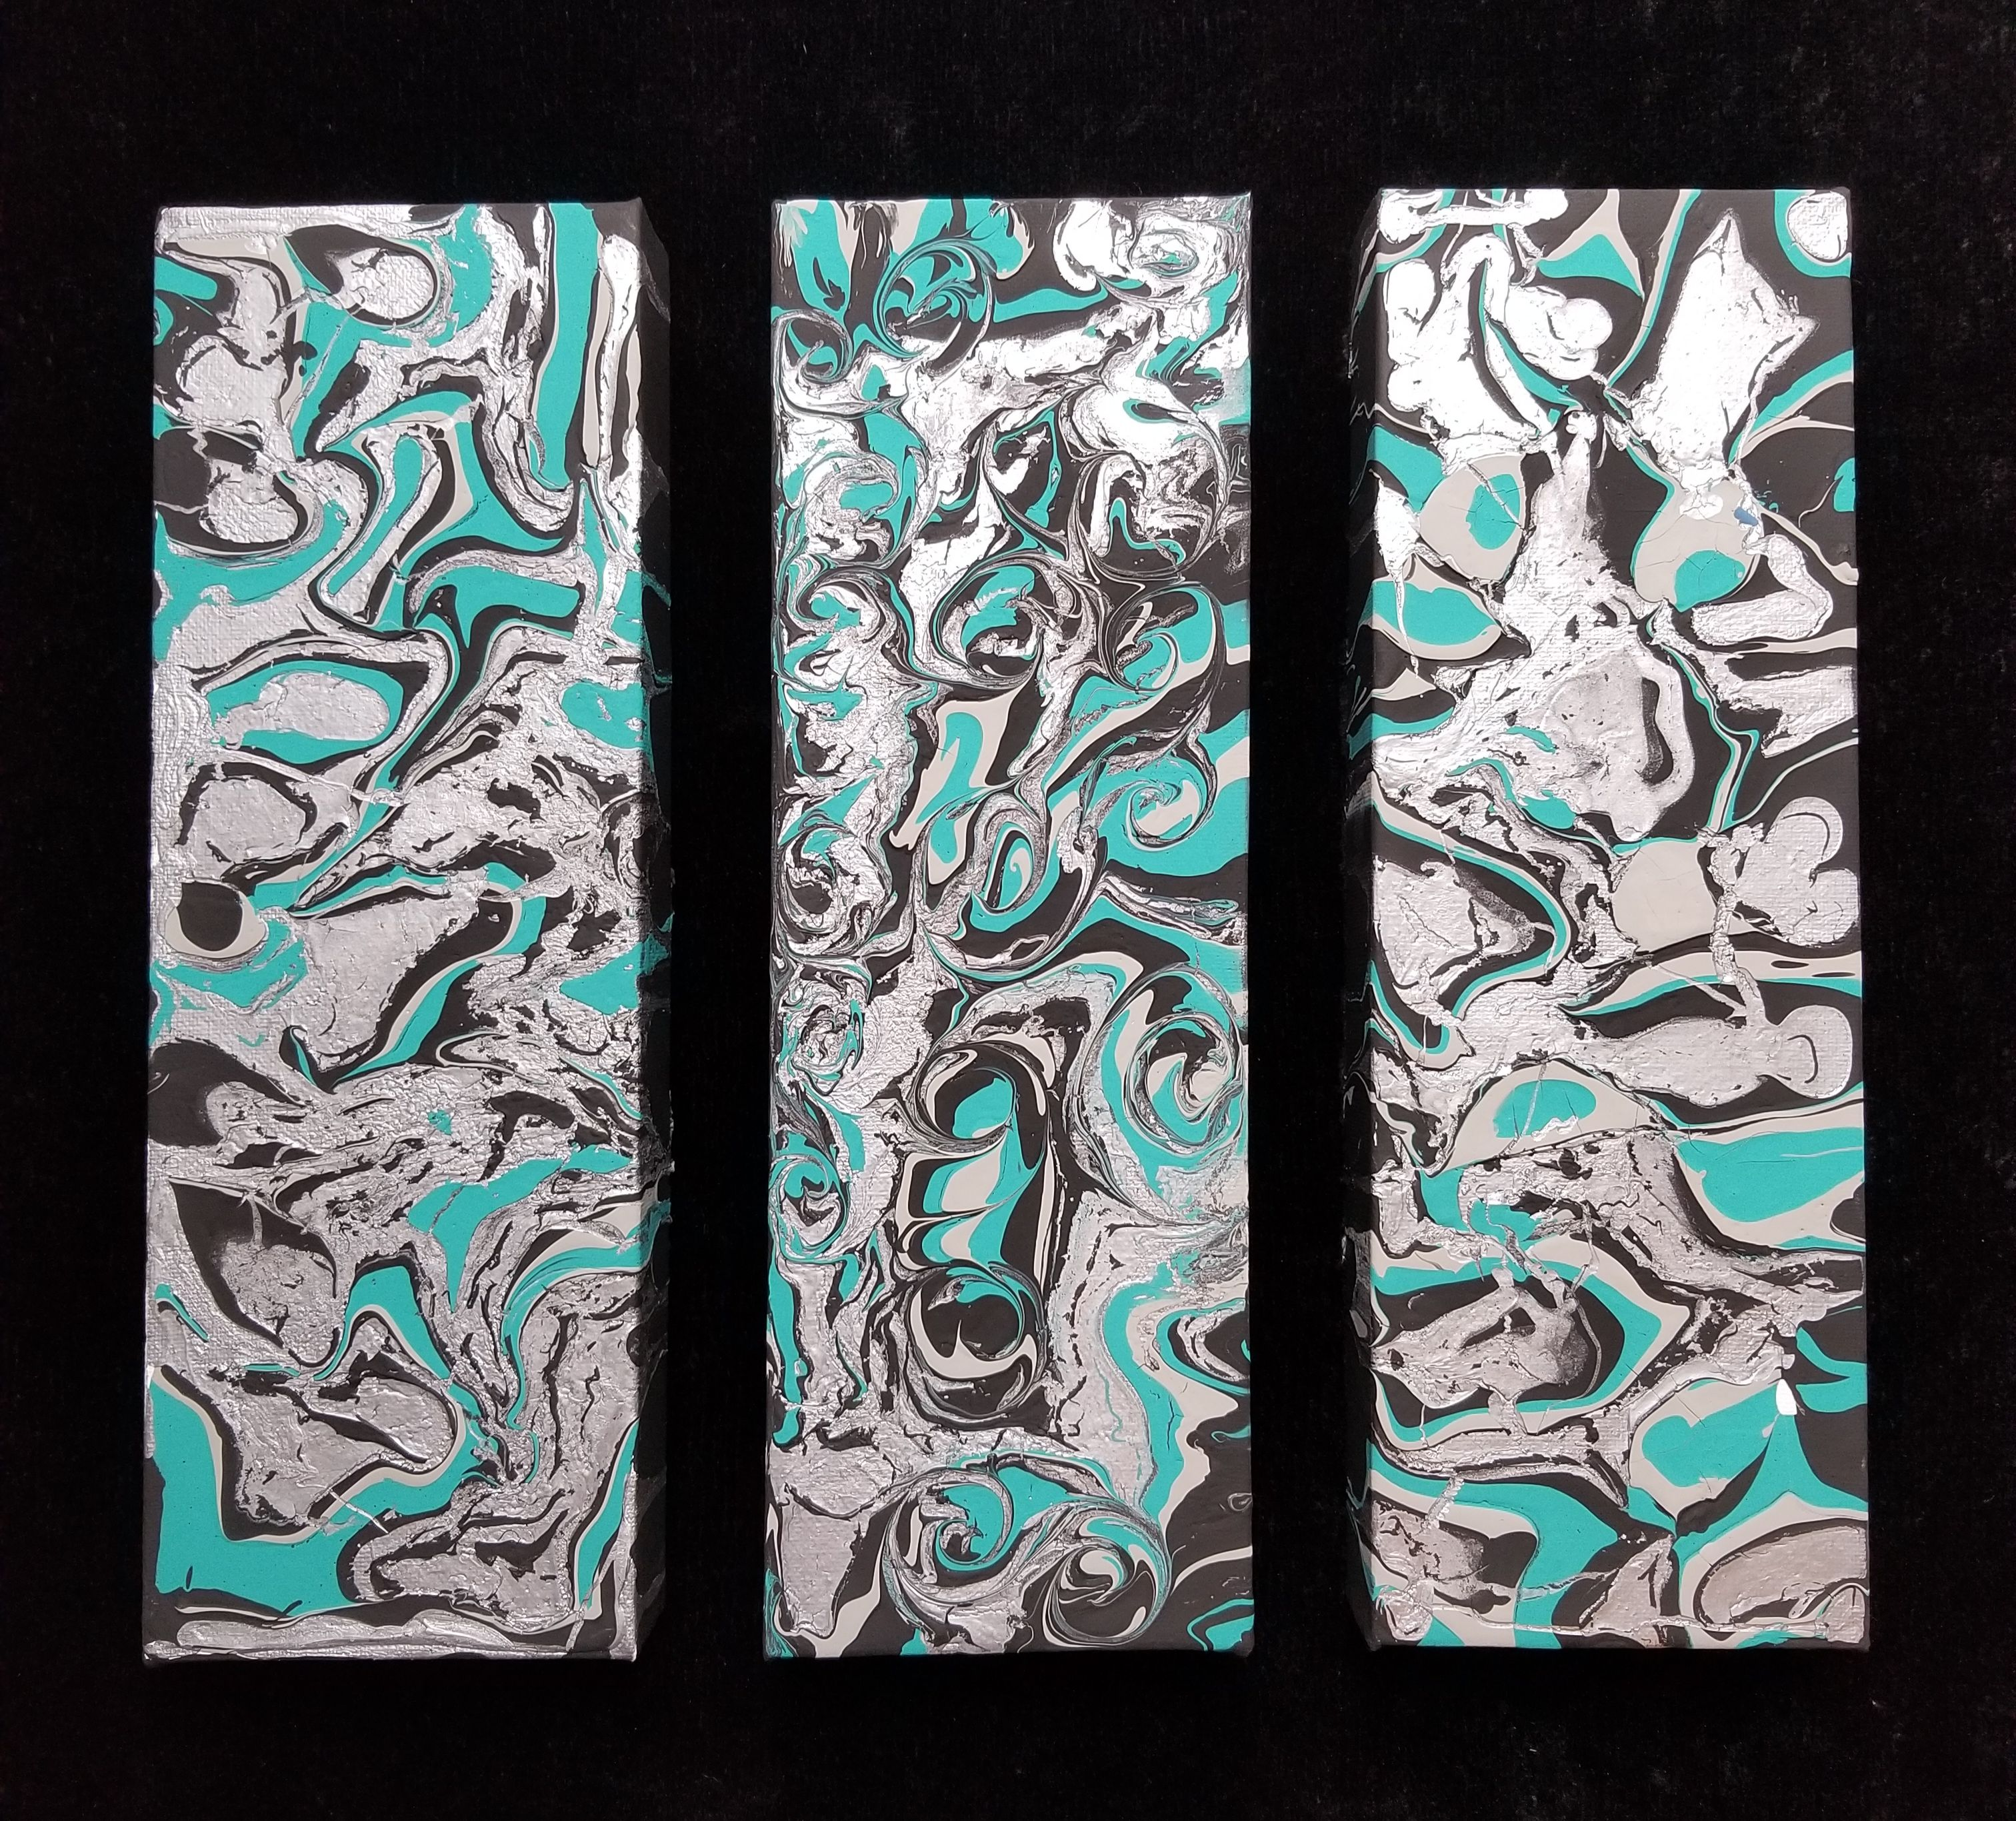 Abstract wall art acrylic pouring teal black grey and silver